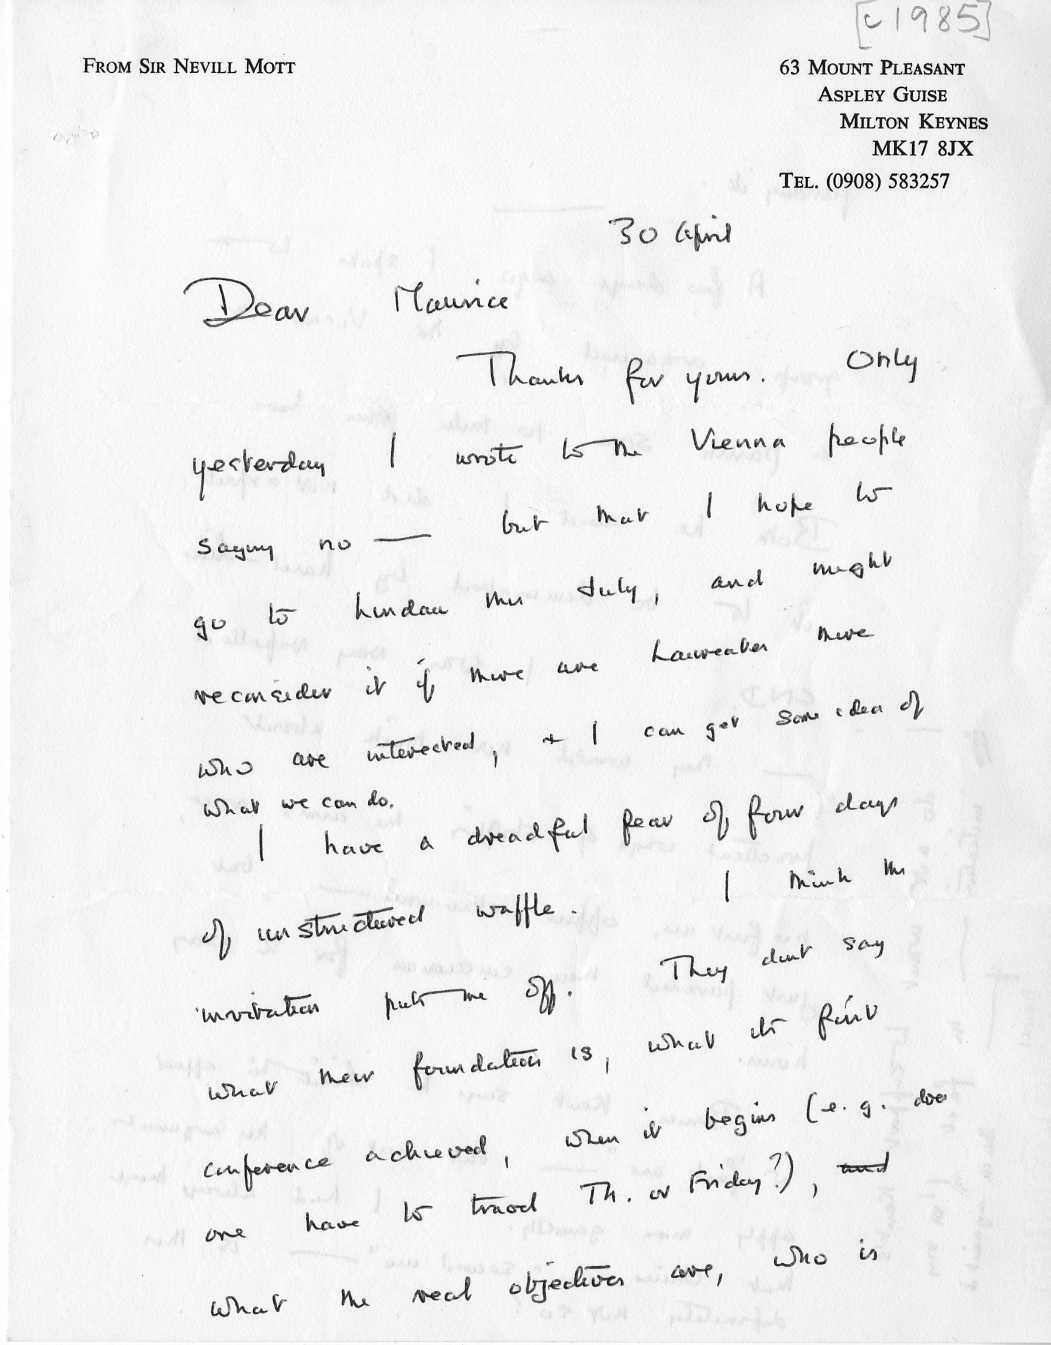 Dna and social responsibility cataloguing the personal papers of dna and social responsibility cataloguing the personal papers of maurice wilkins 1916 2004 not another conference a letter from sir nevill mott on the spiritdancerdesigns Image collections